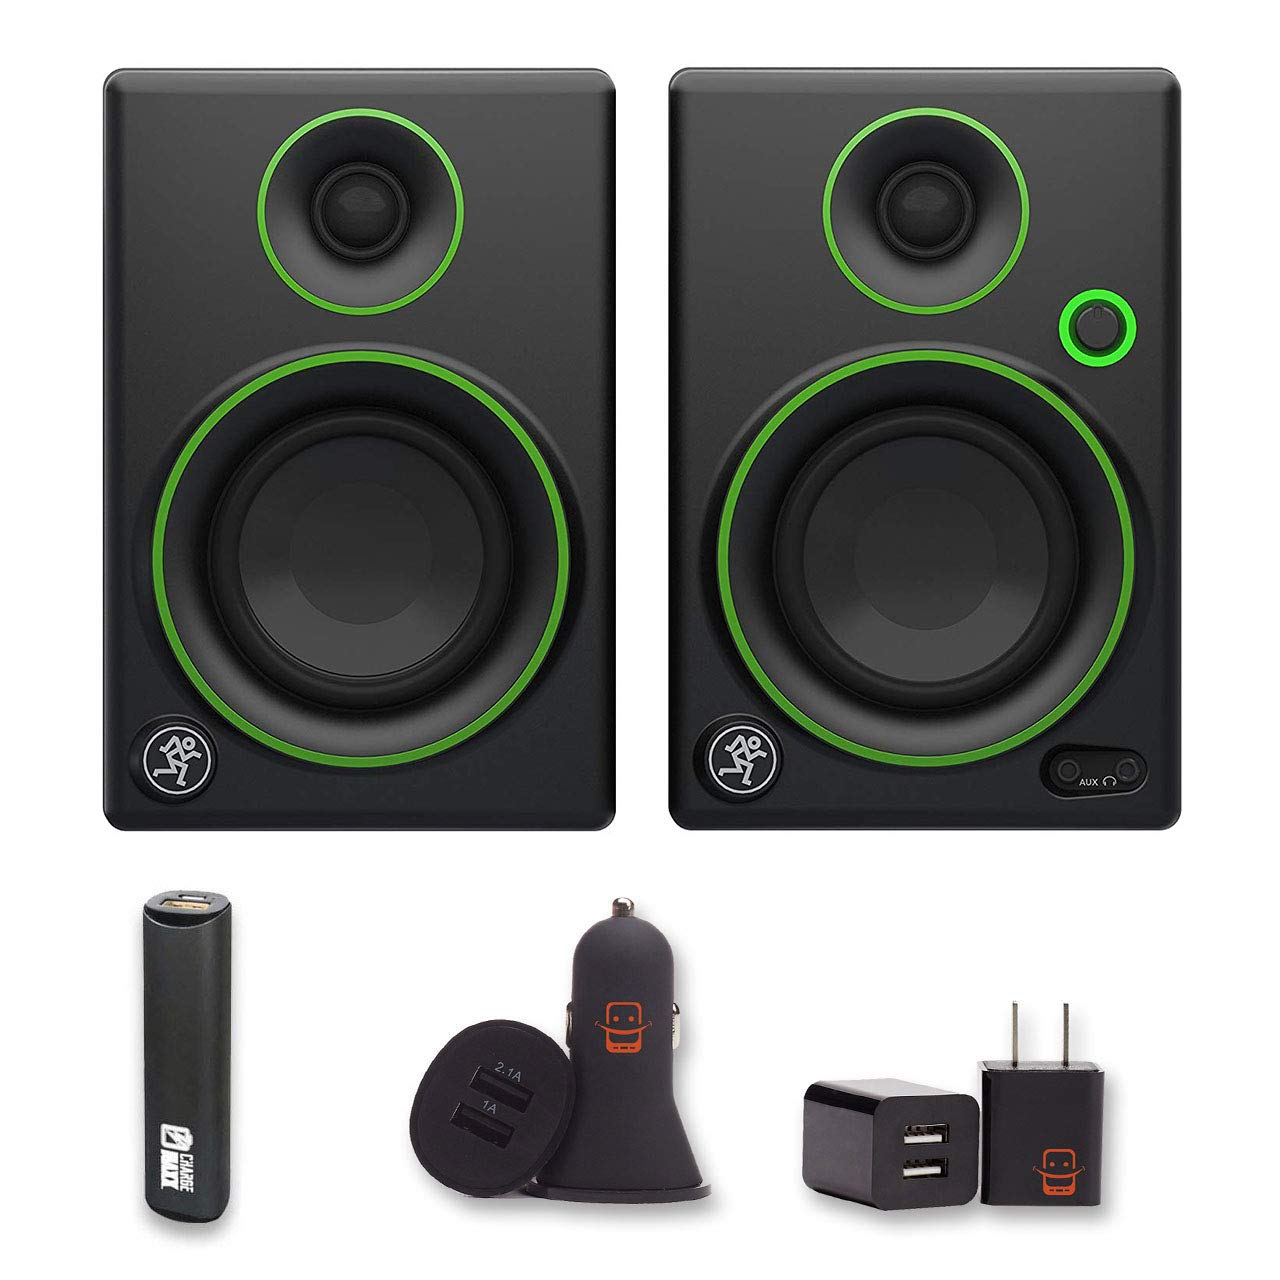 Mackie CR3 CR Series 3'' Creative Reference Multimedia Monitors (Pair) Bundle with PowerBank + USB Car Charger + USB Wall Charger (5 Items)